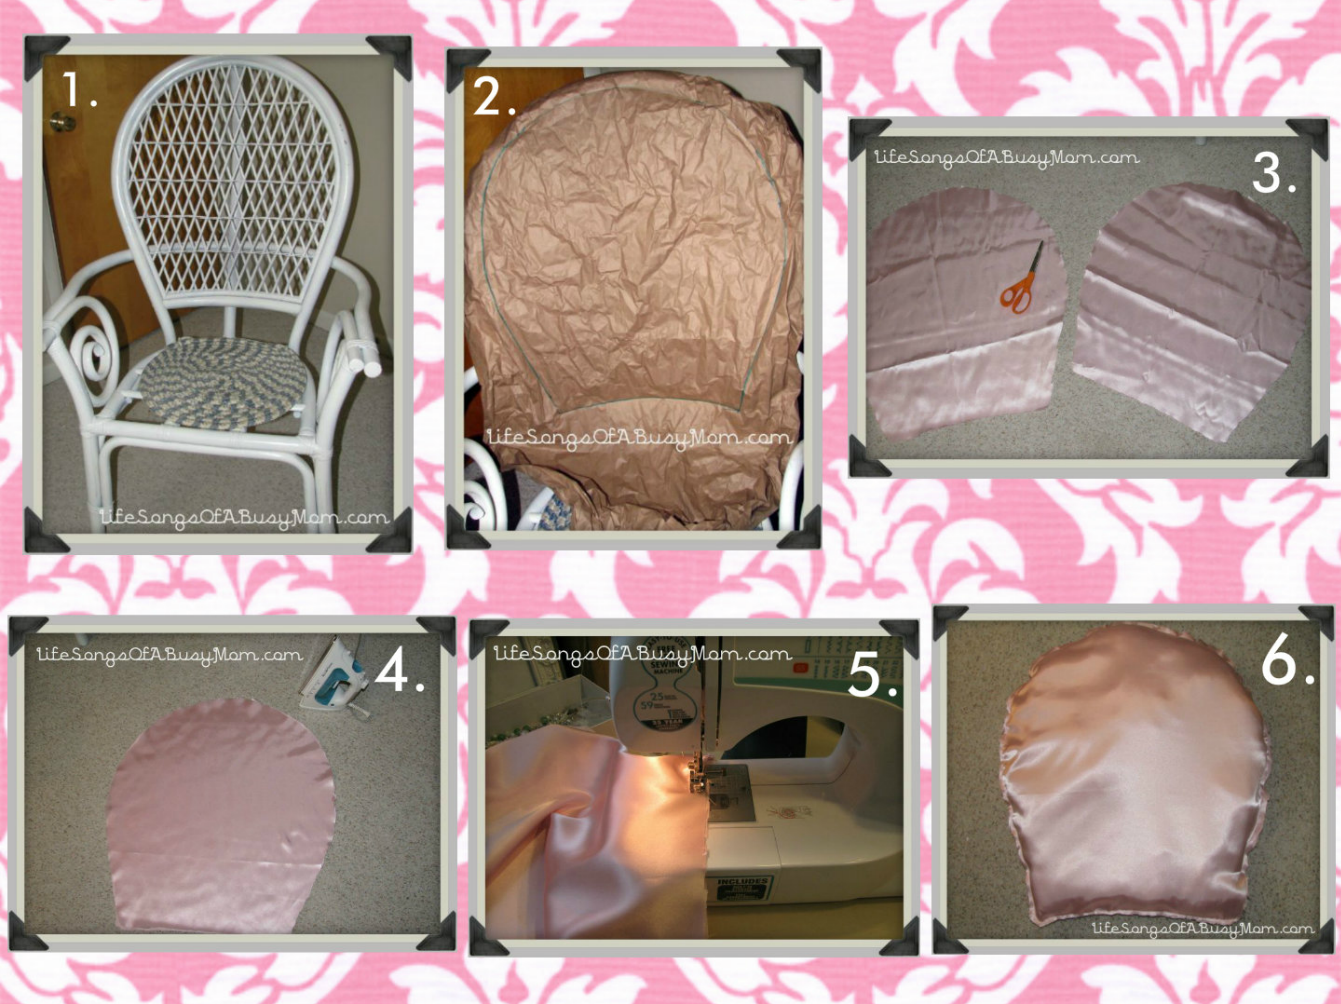 Diy Wicker Chair Cushions Exercise Ball As Benefits Life Songs Of A Busy Mom Princess Throne